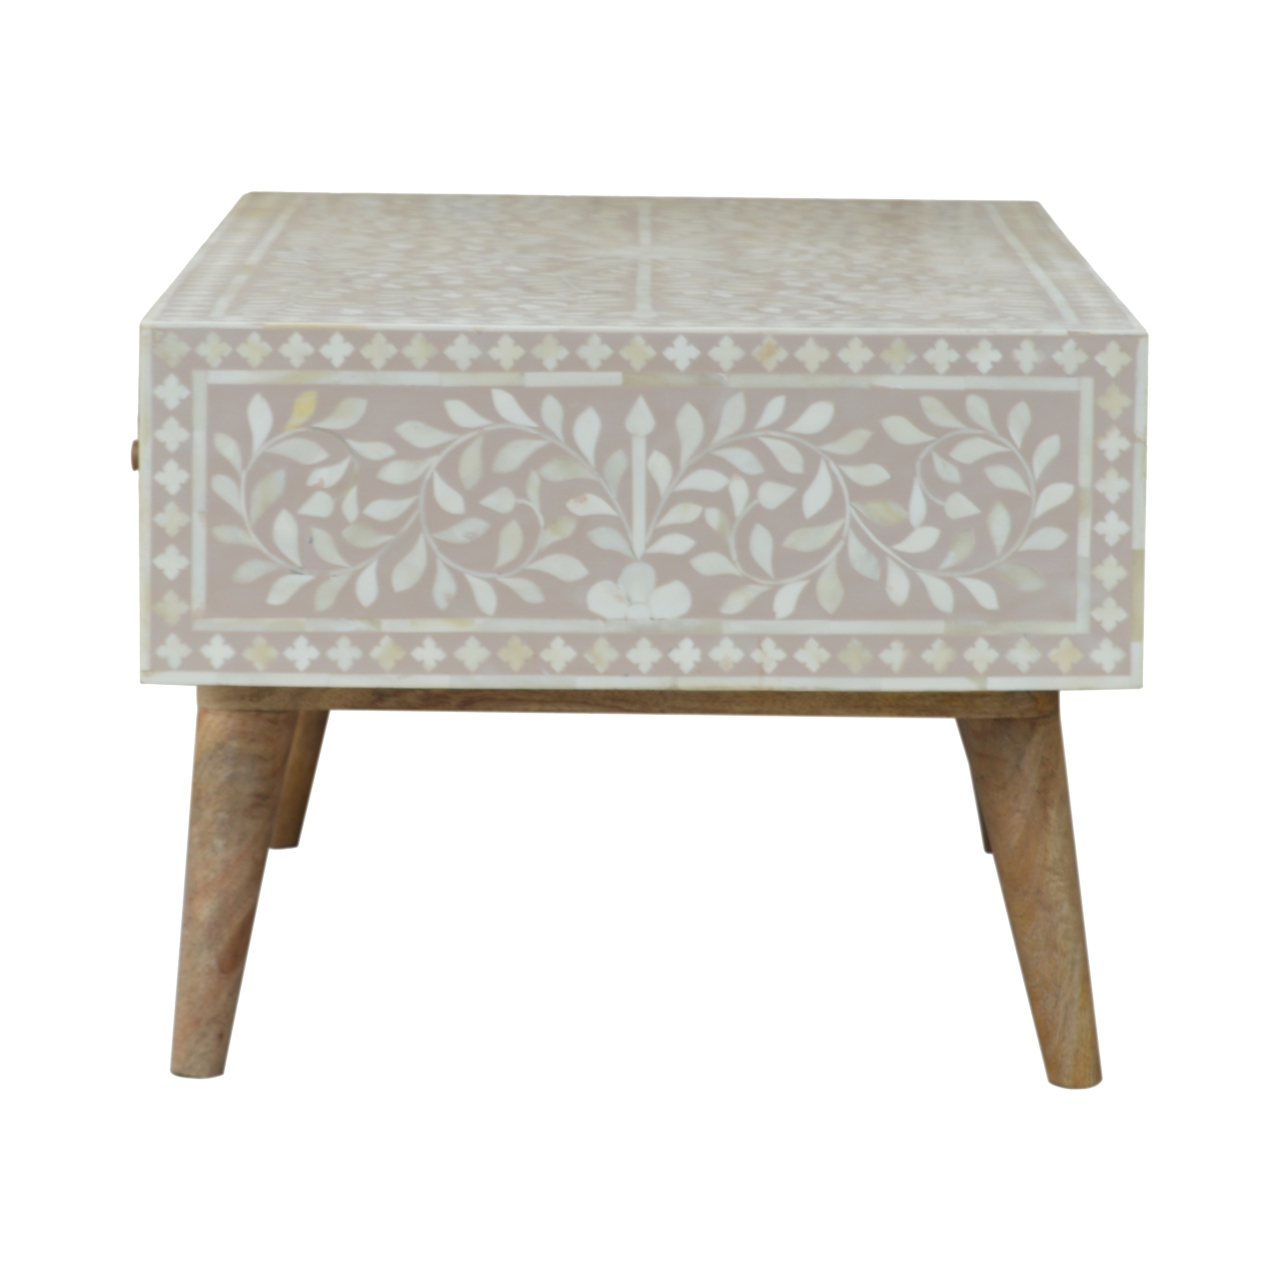 Light-Taupe-Floral-Bone-Inlay-Coffee-Table-8